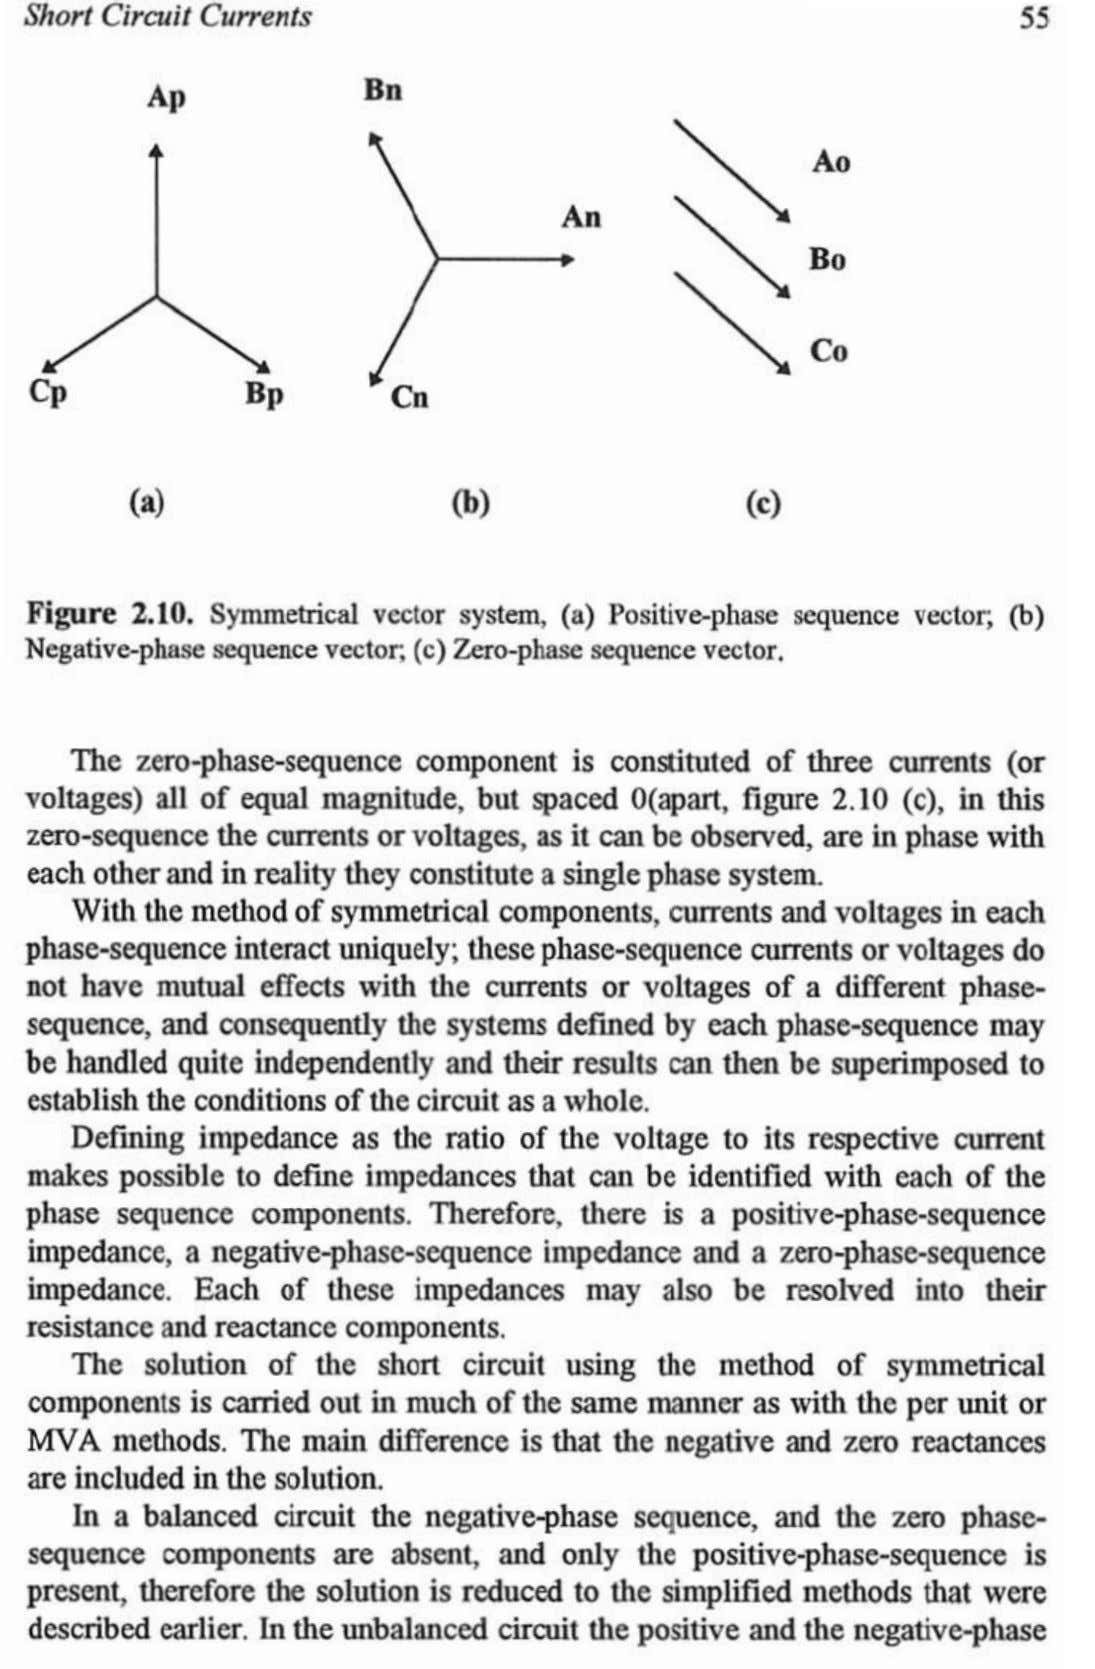 A0 Bo CO Figure 2.10. Symmetrical vector system, (a) Positive-phase sequence vector, (b) Negative-phasesequence